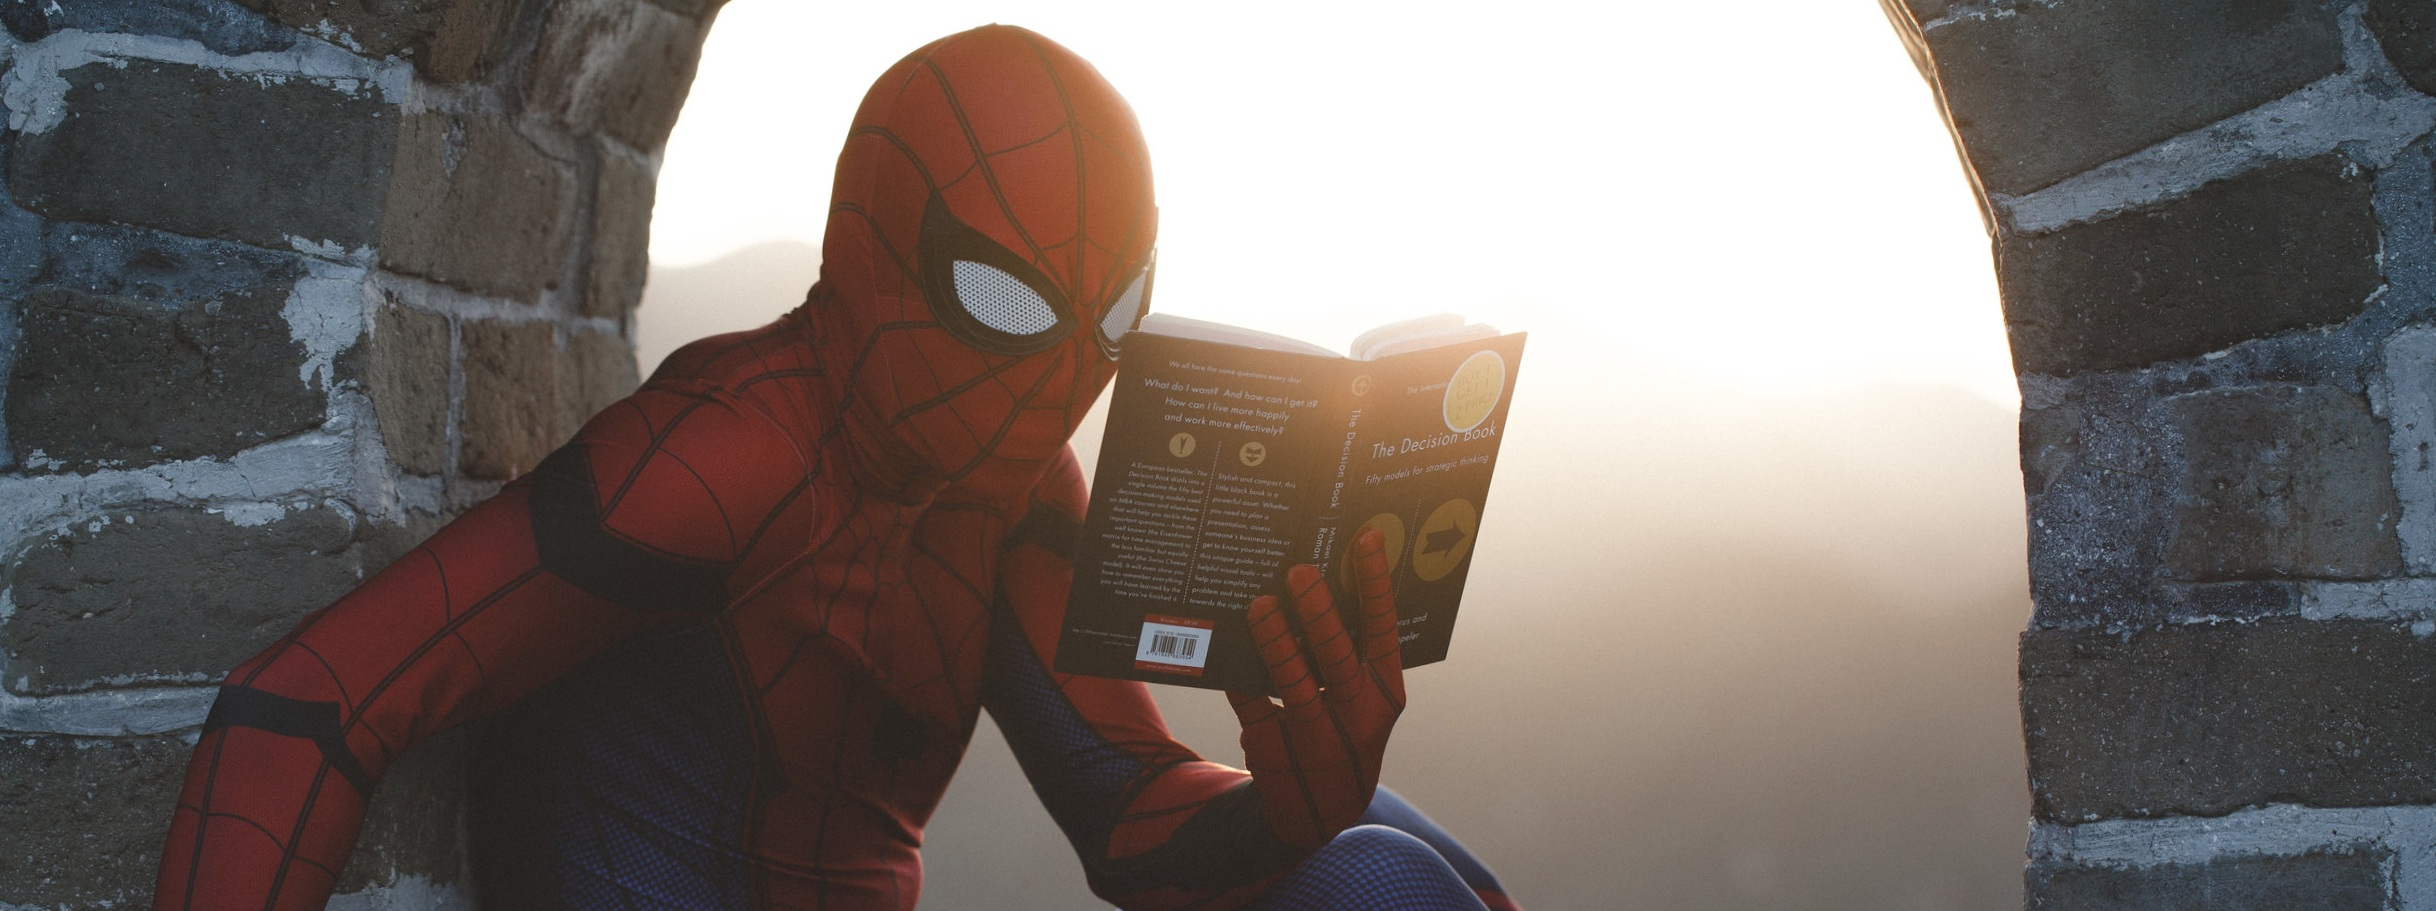 Spider Man in the wild reading up on Self Rescue Hacks!